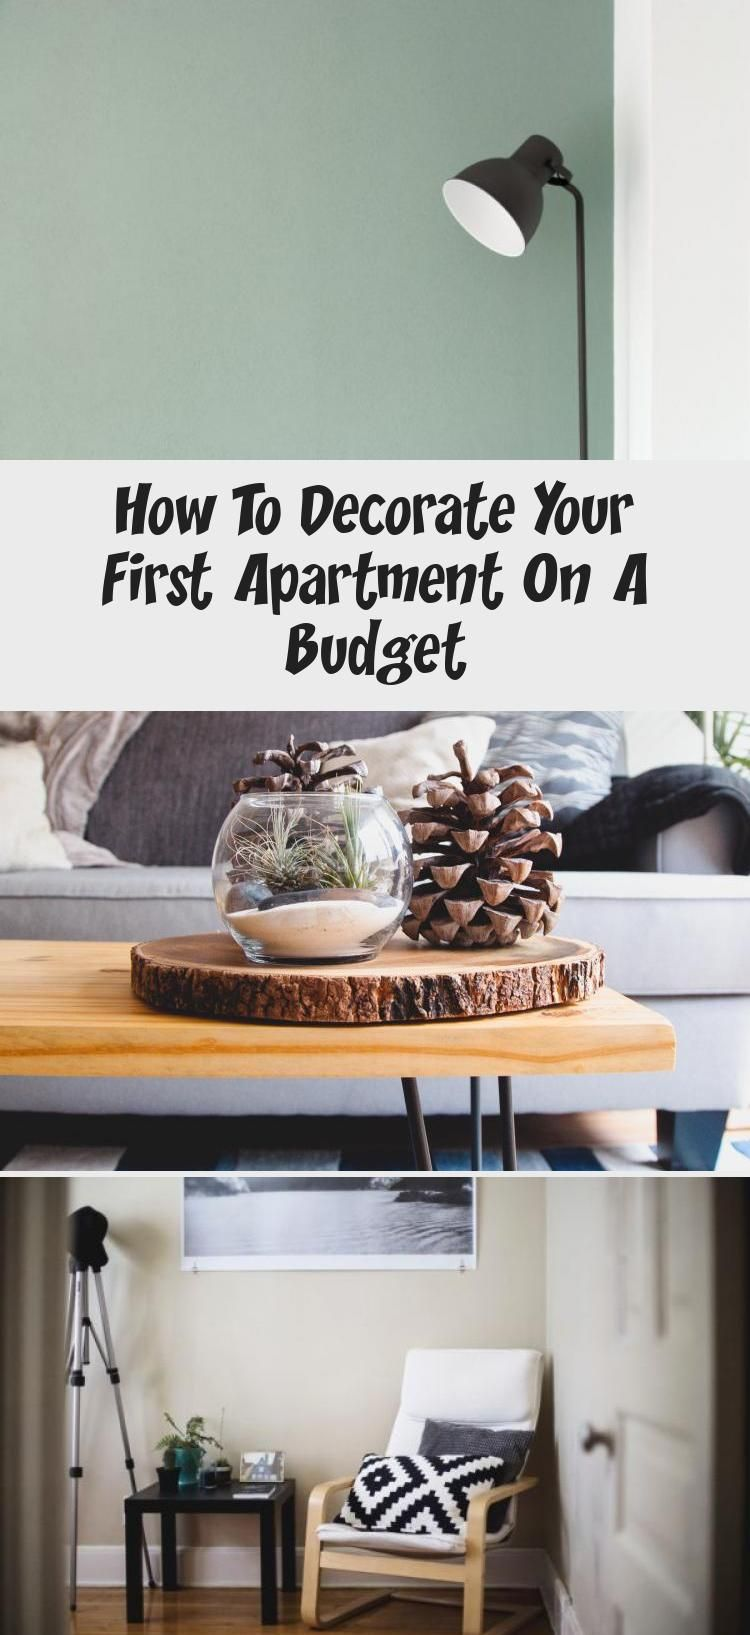 How To Decorate Your First Apartment On A Budget In 2020 With